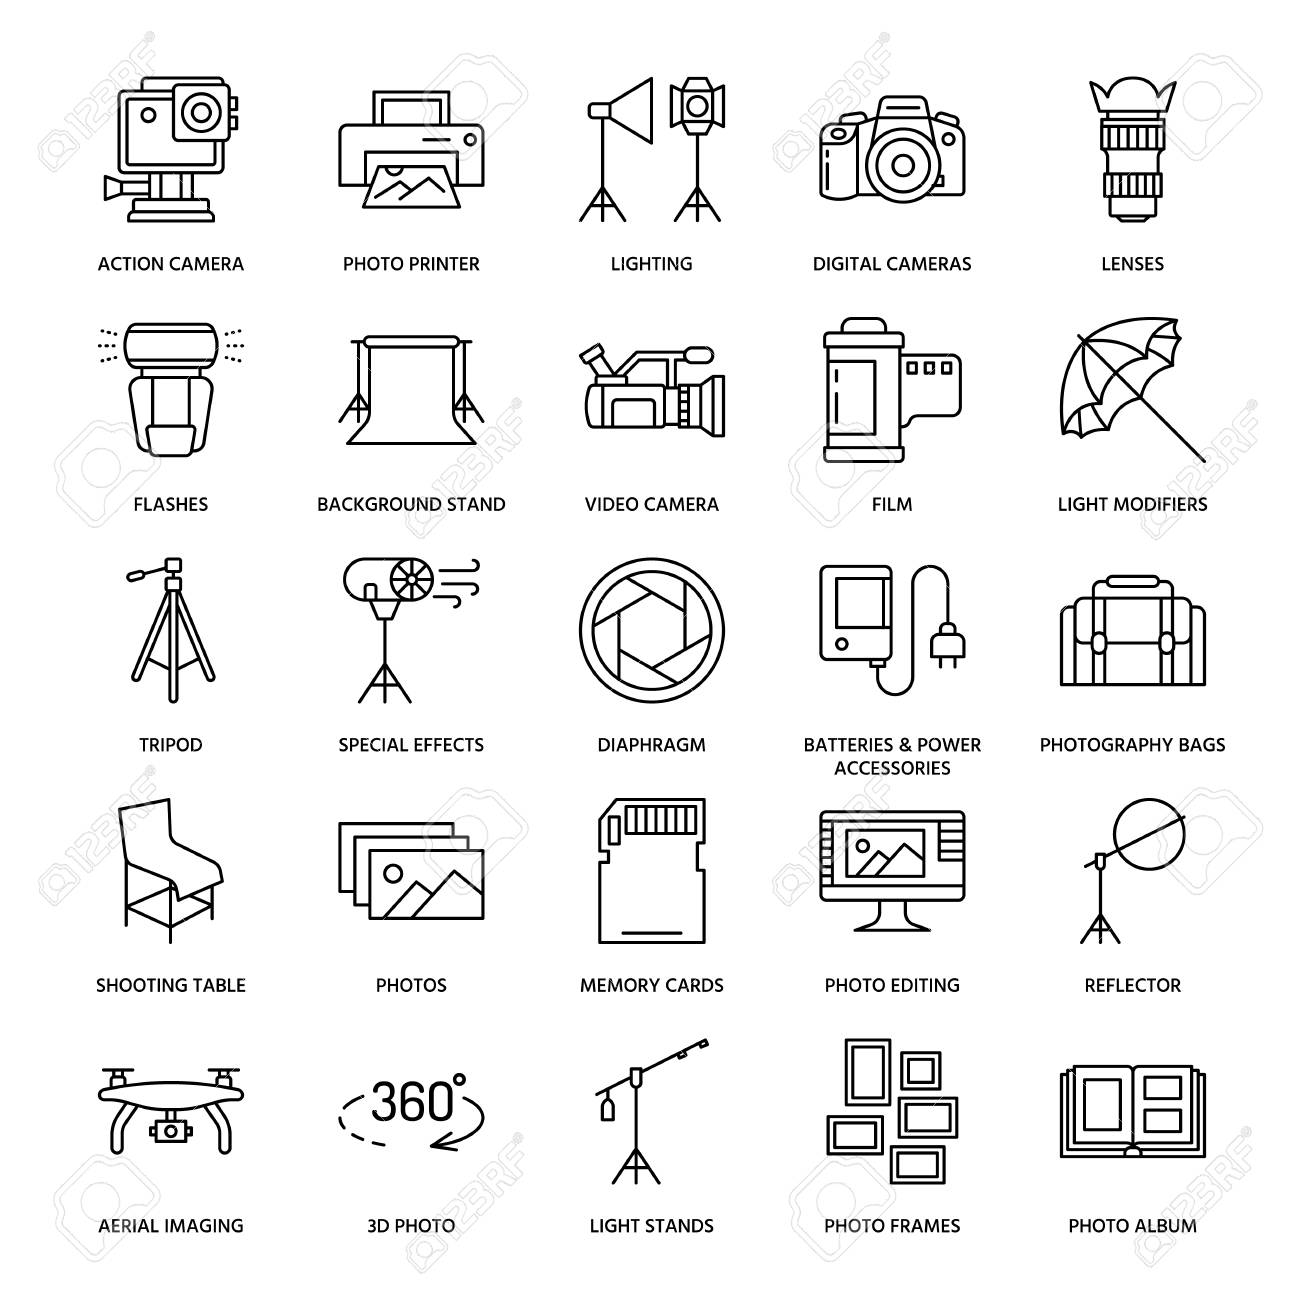 Photography equipment flat line icons. Digital camera, photos, lighting, video cameras, photo accessories, memory card, tripod lens film. Vector illustration, signs for photo studio or store. - 85203917